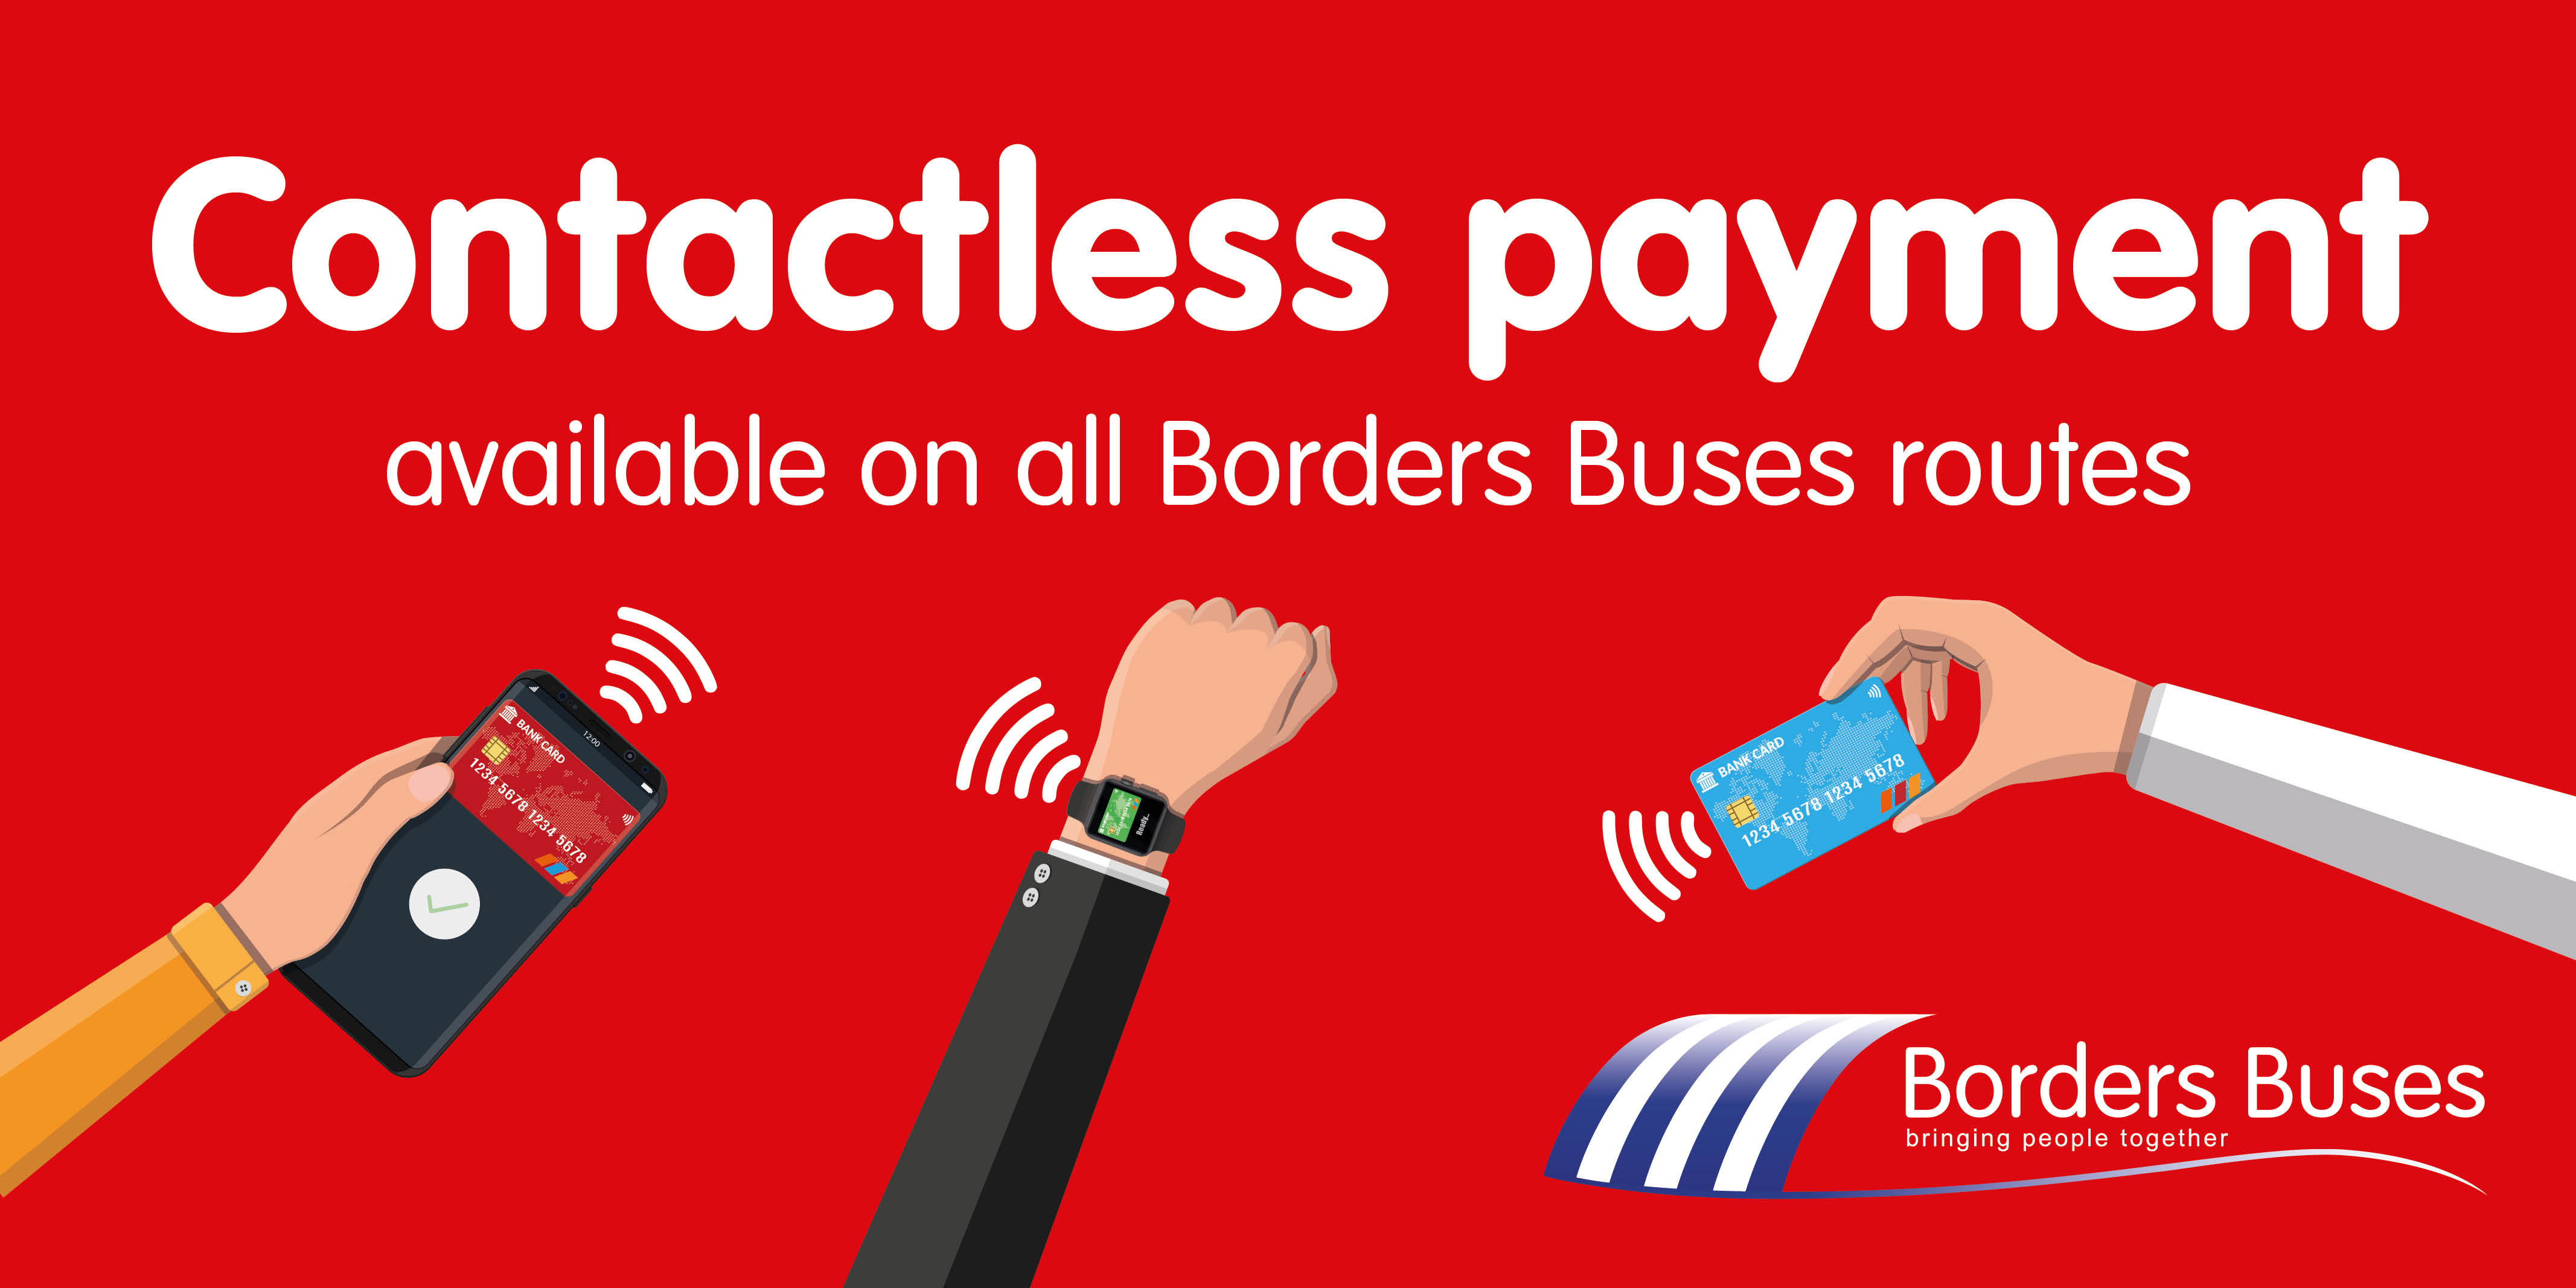 Three illustrated arms paying each with mobile, card and smart watch with contactless